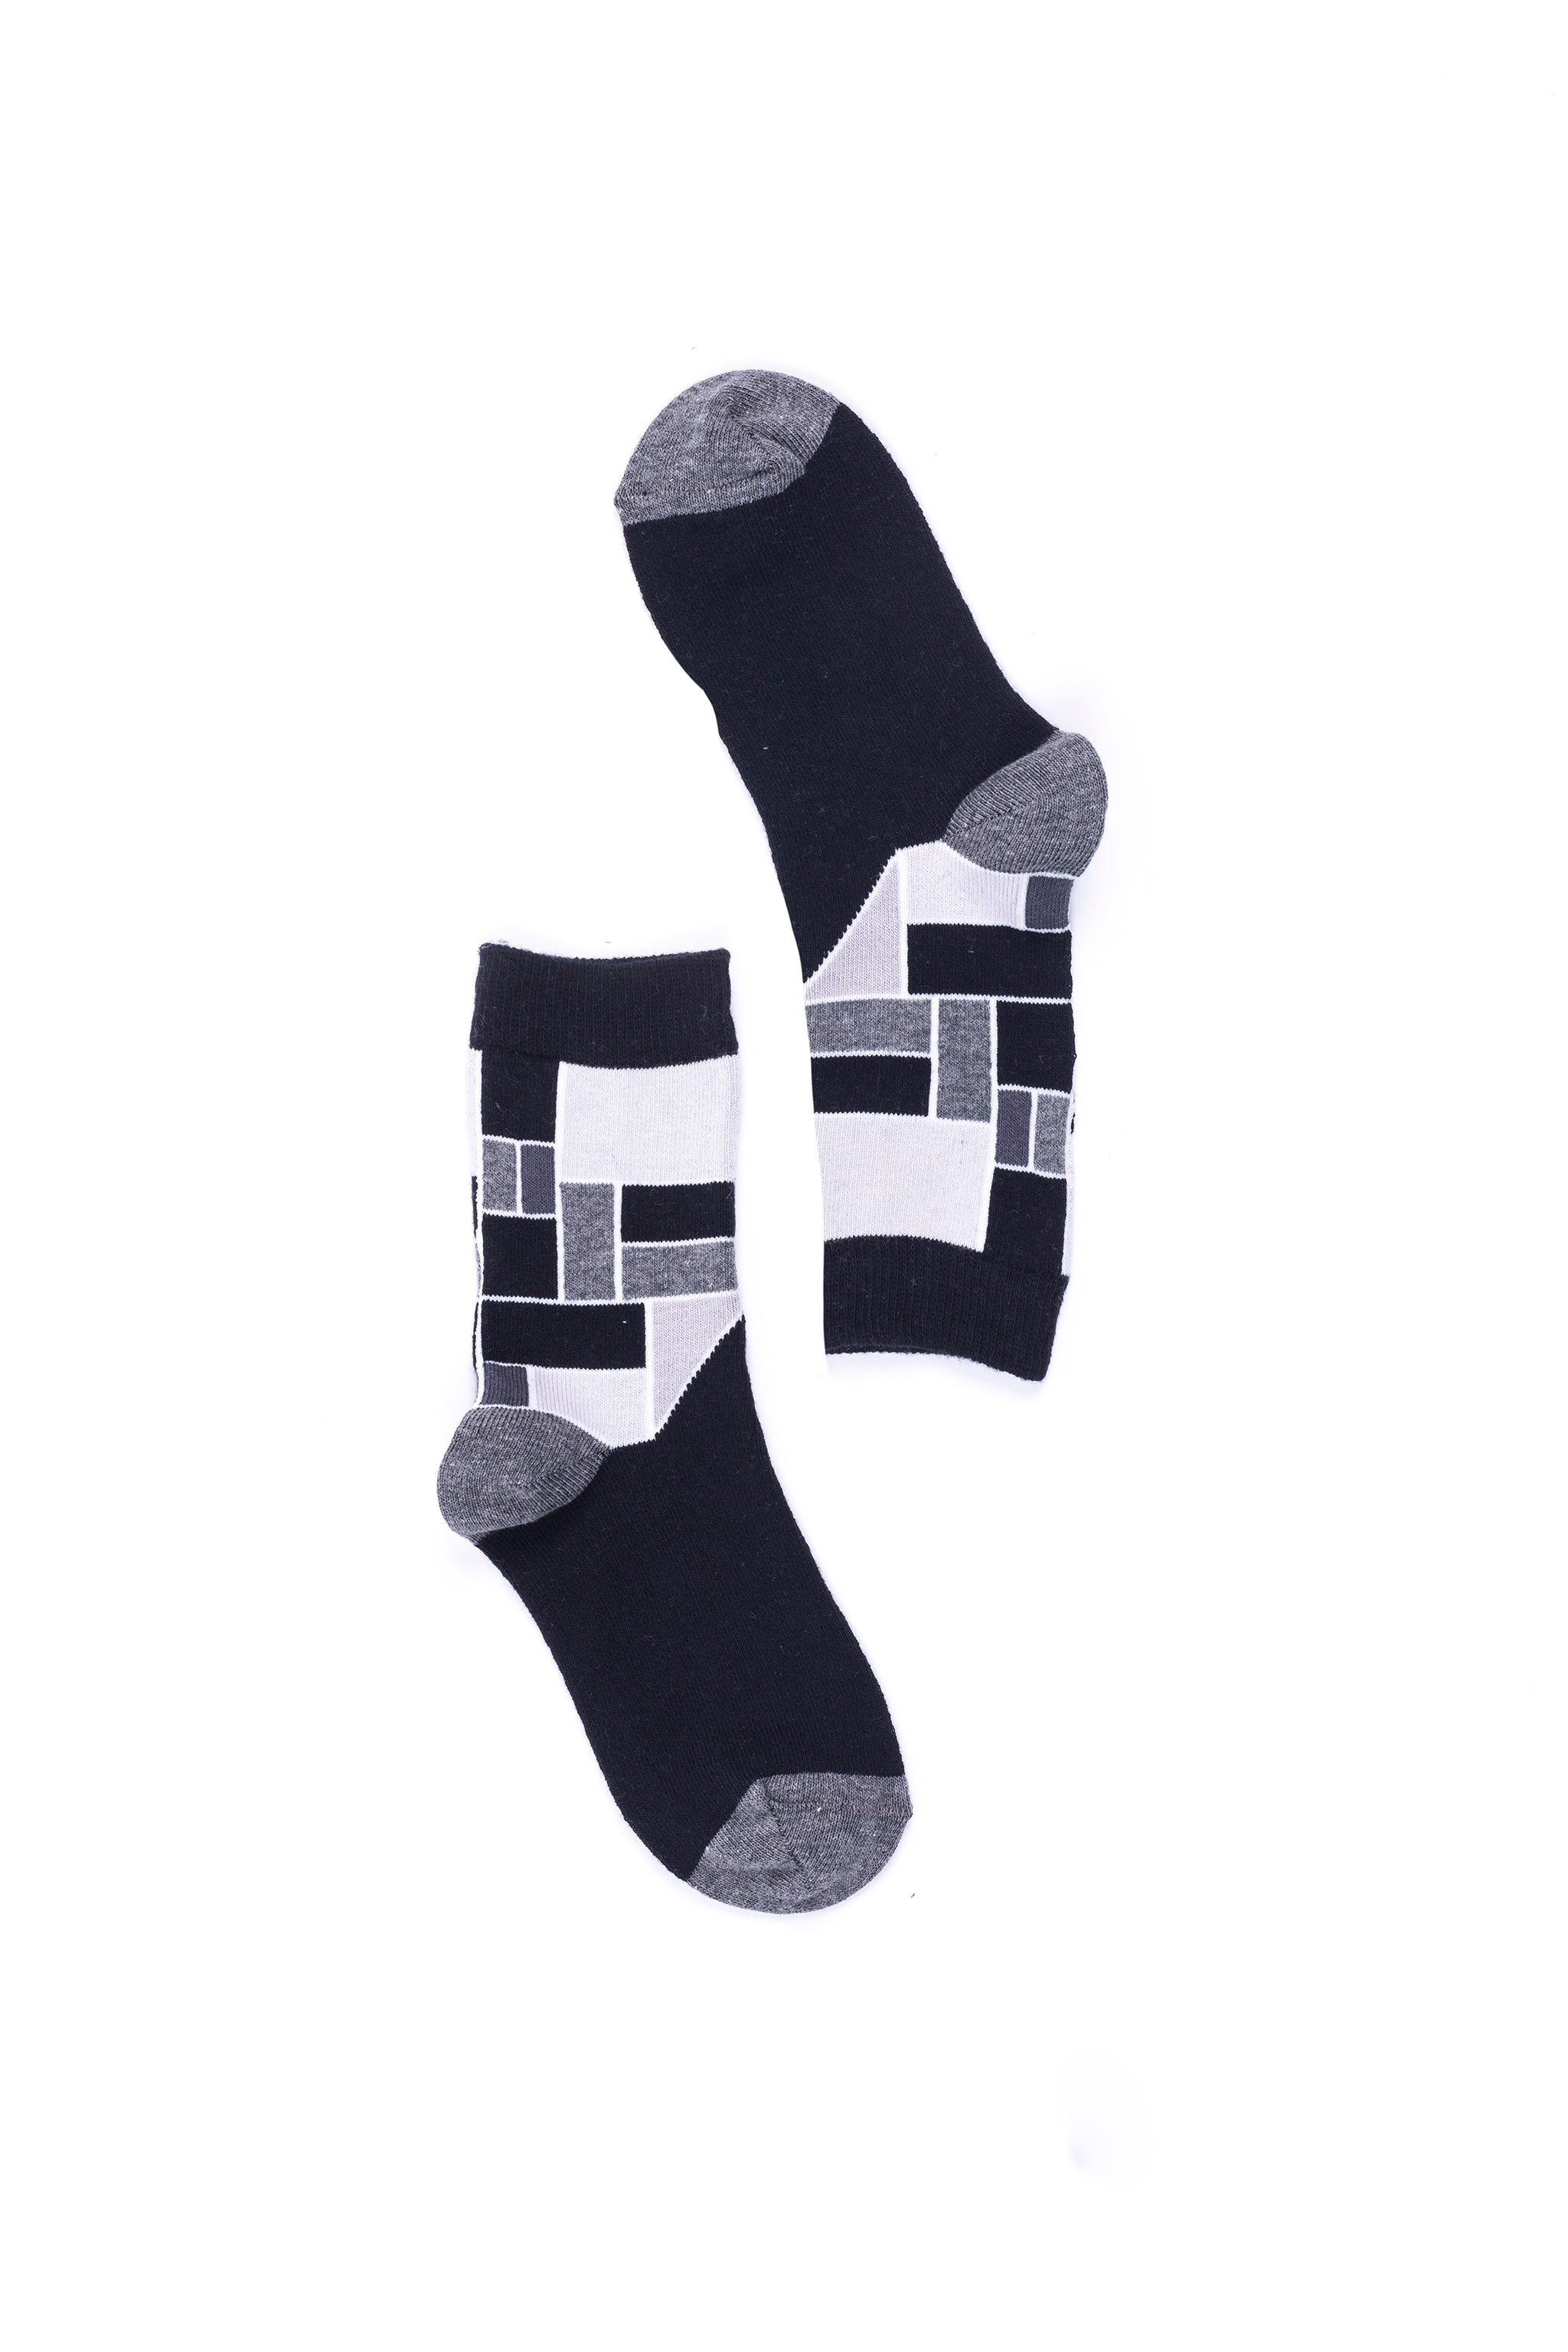 Patterned 4071  Single Pair Women's Crew Dress Socks